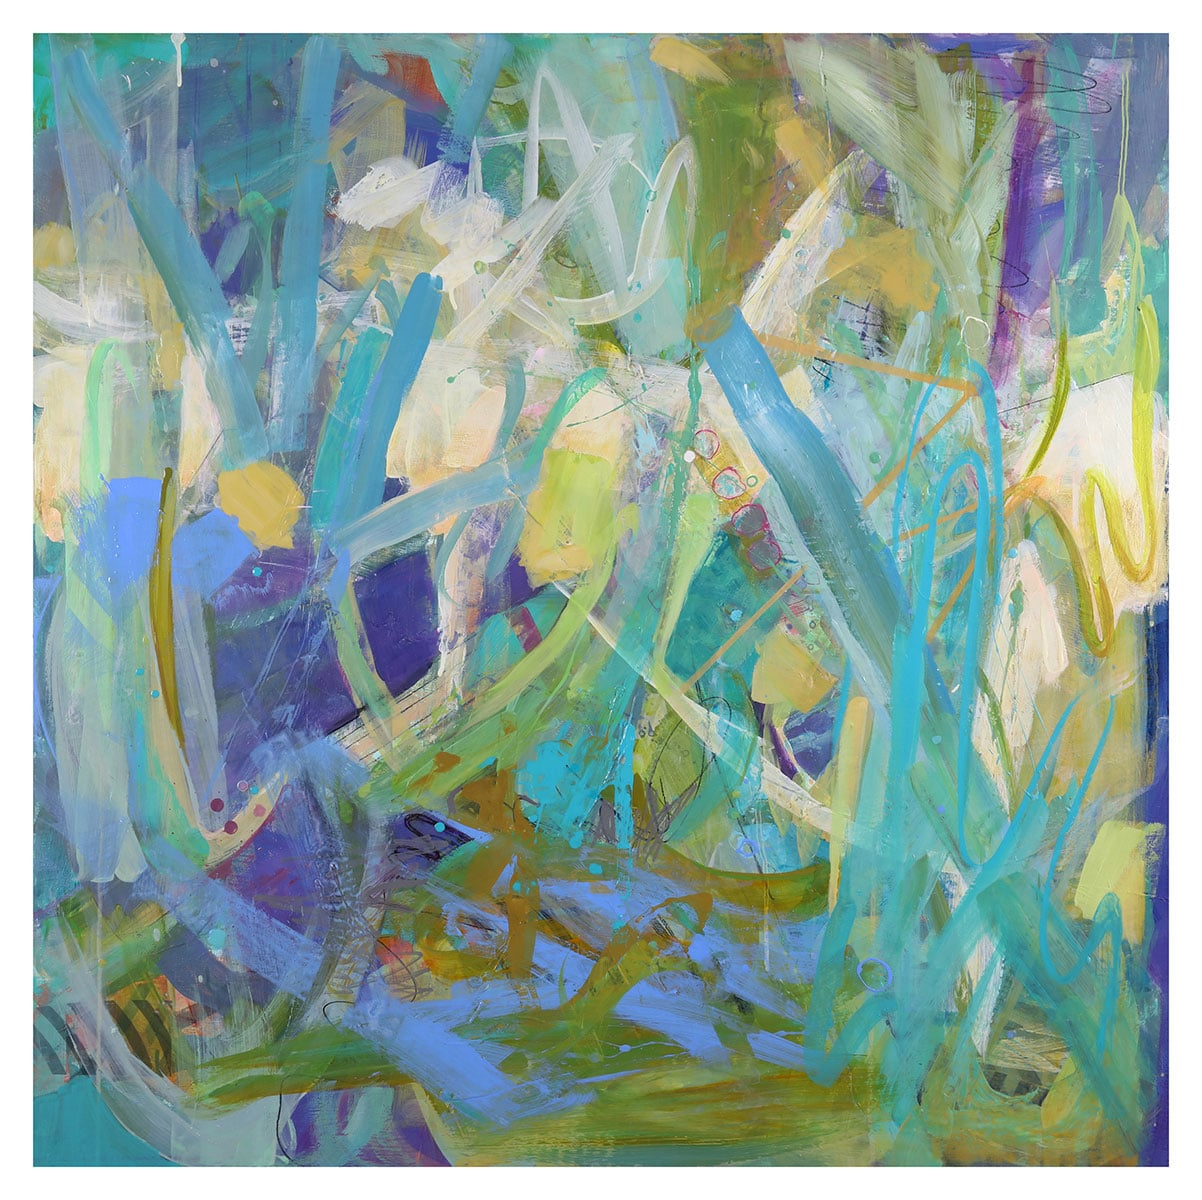 Evelyn Rapin: The Nature of Art